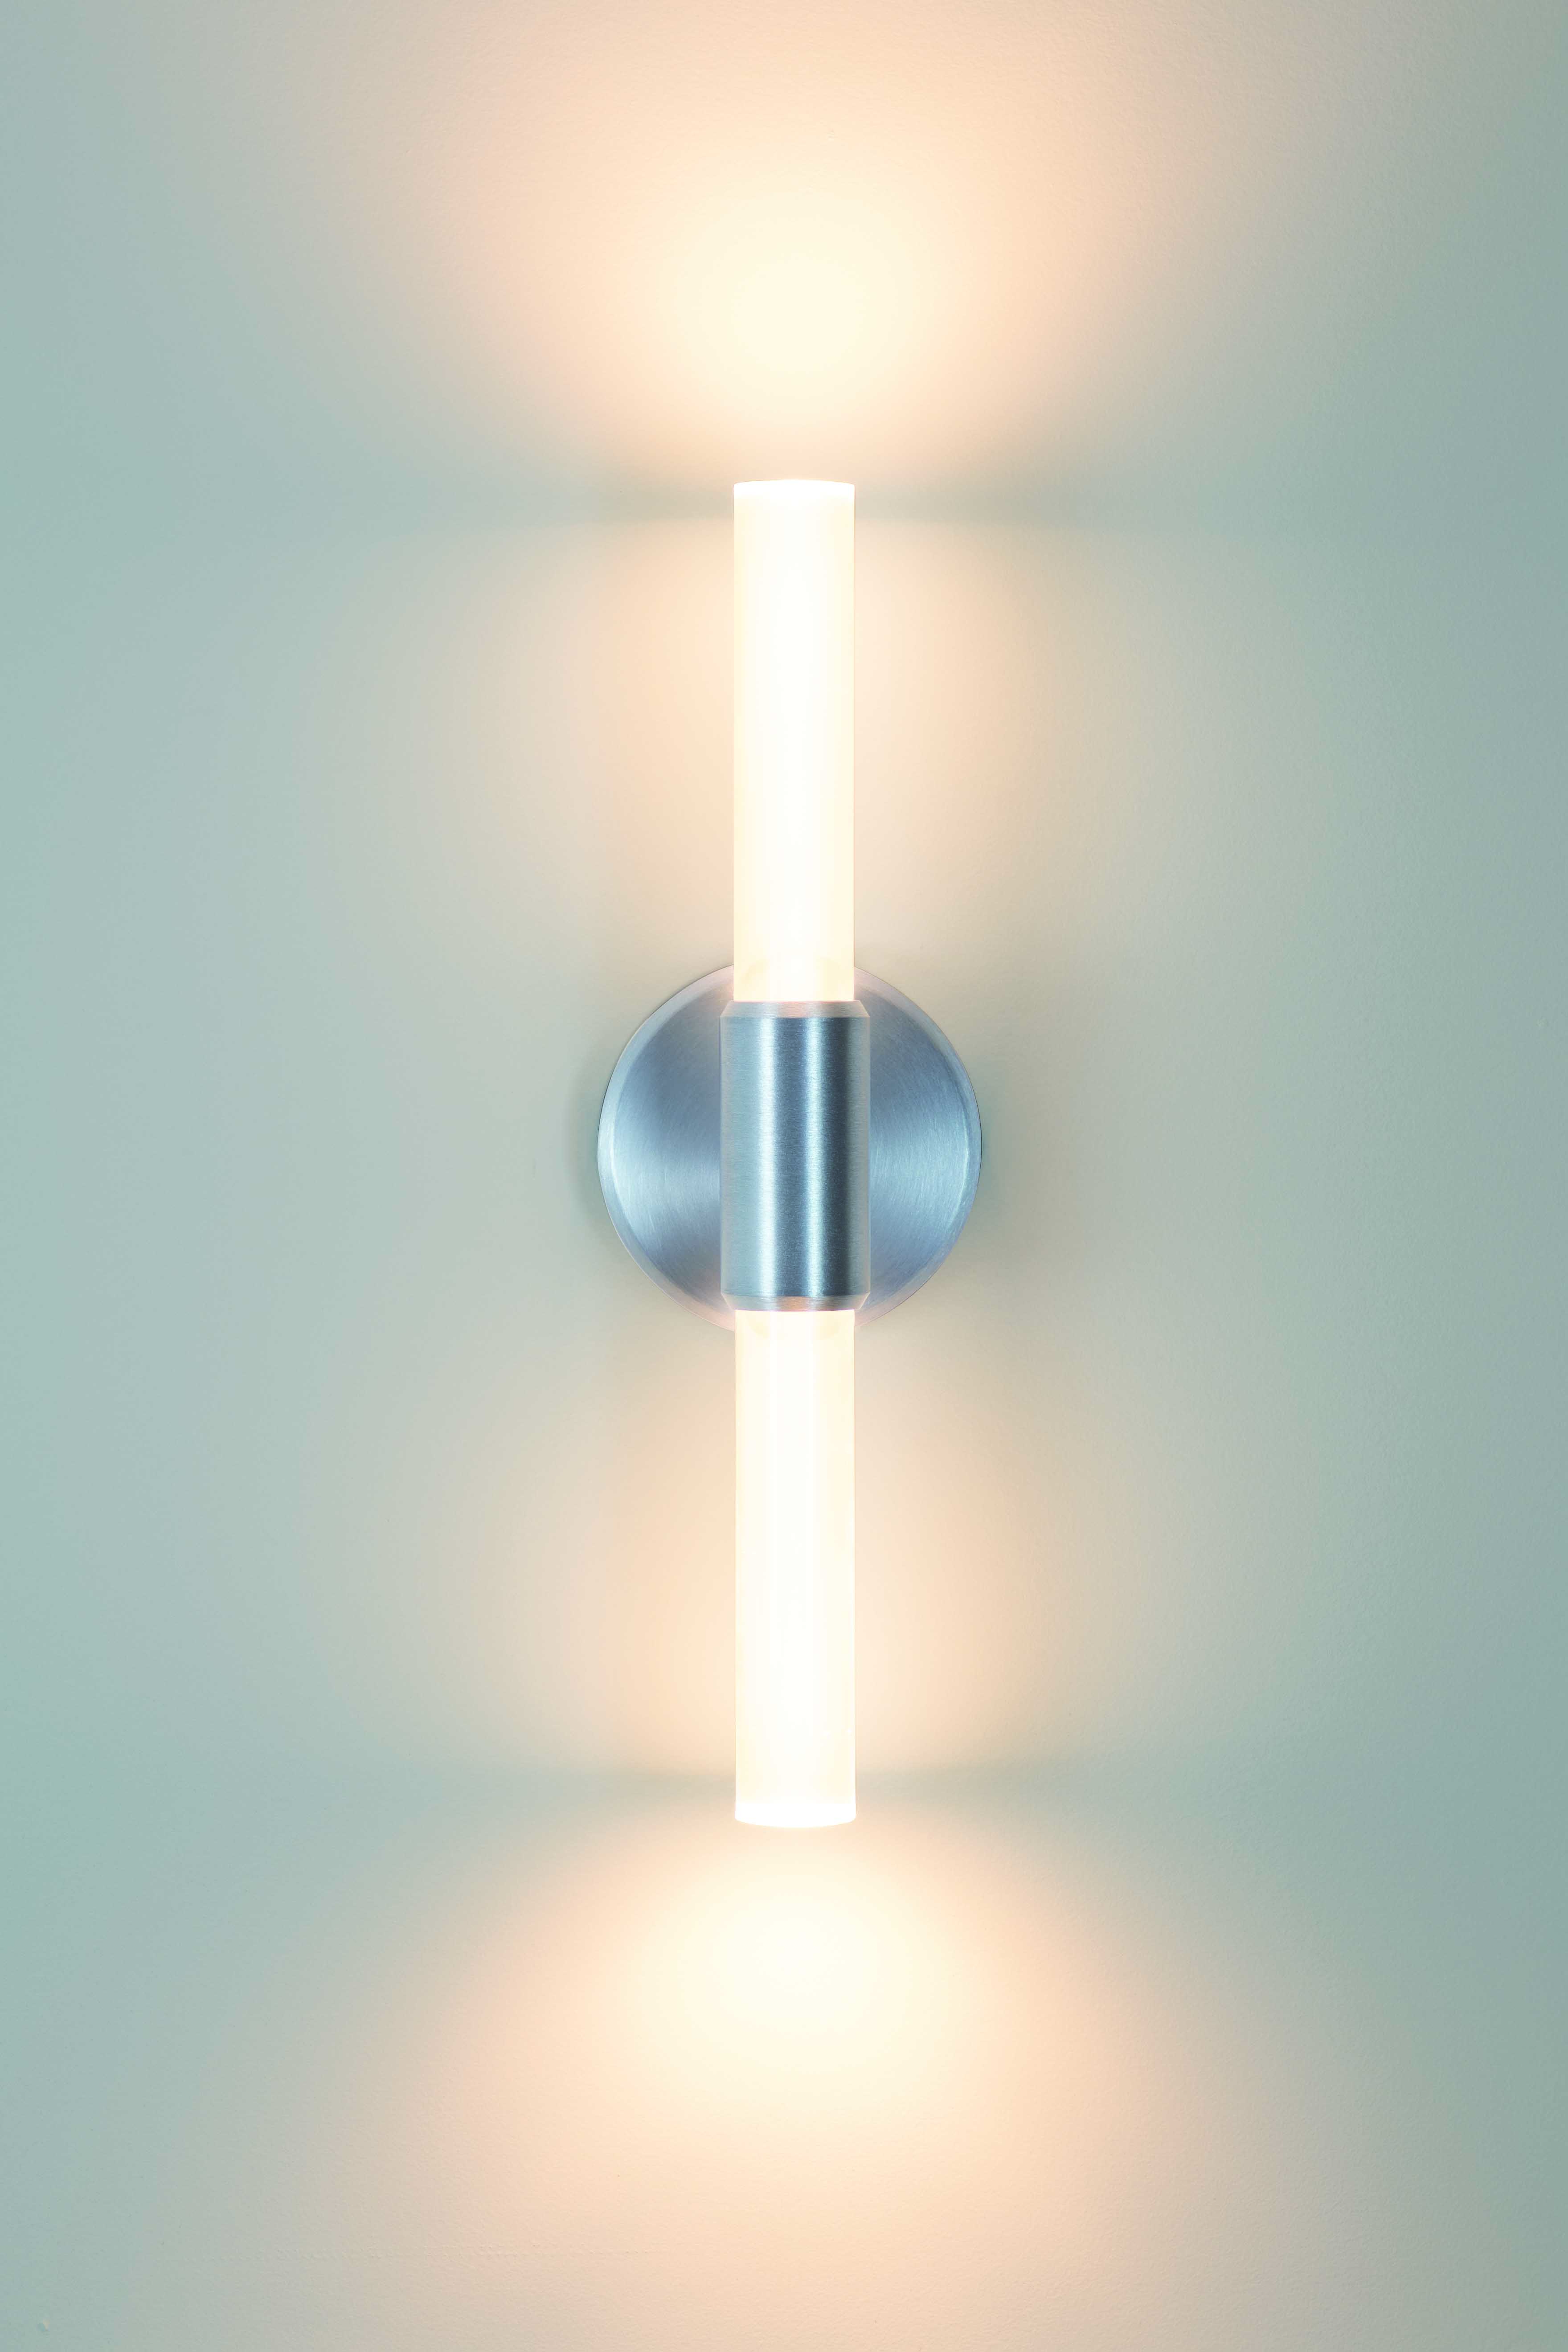 Theo double candelabra rod wall sconce in chrome